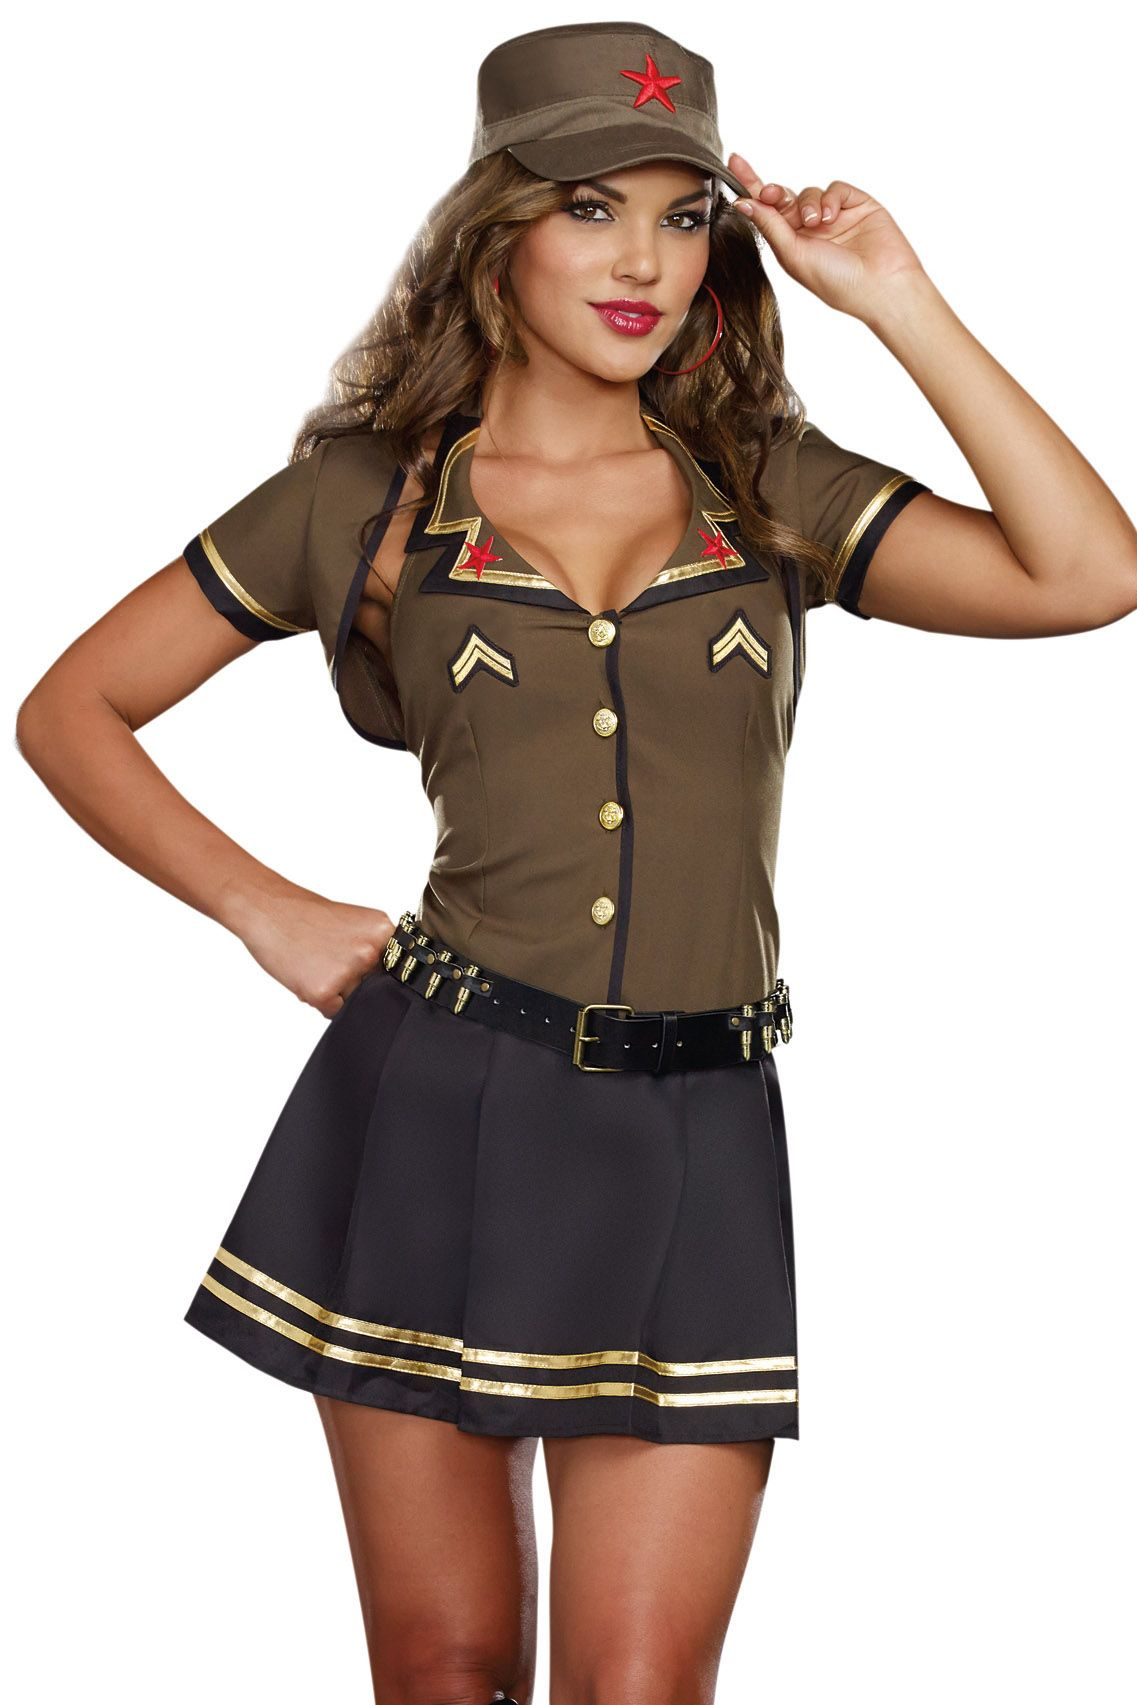 Shop for military costumes like this Army Brat Costume at Lingerie ...